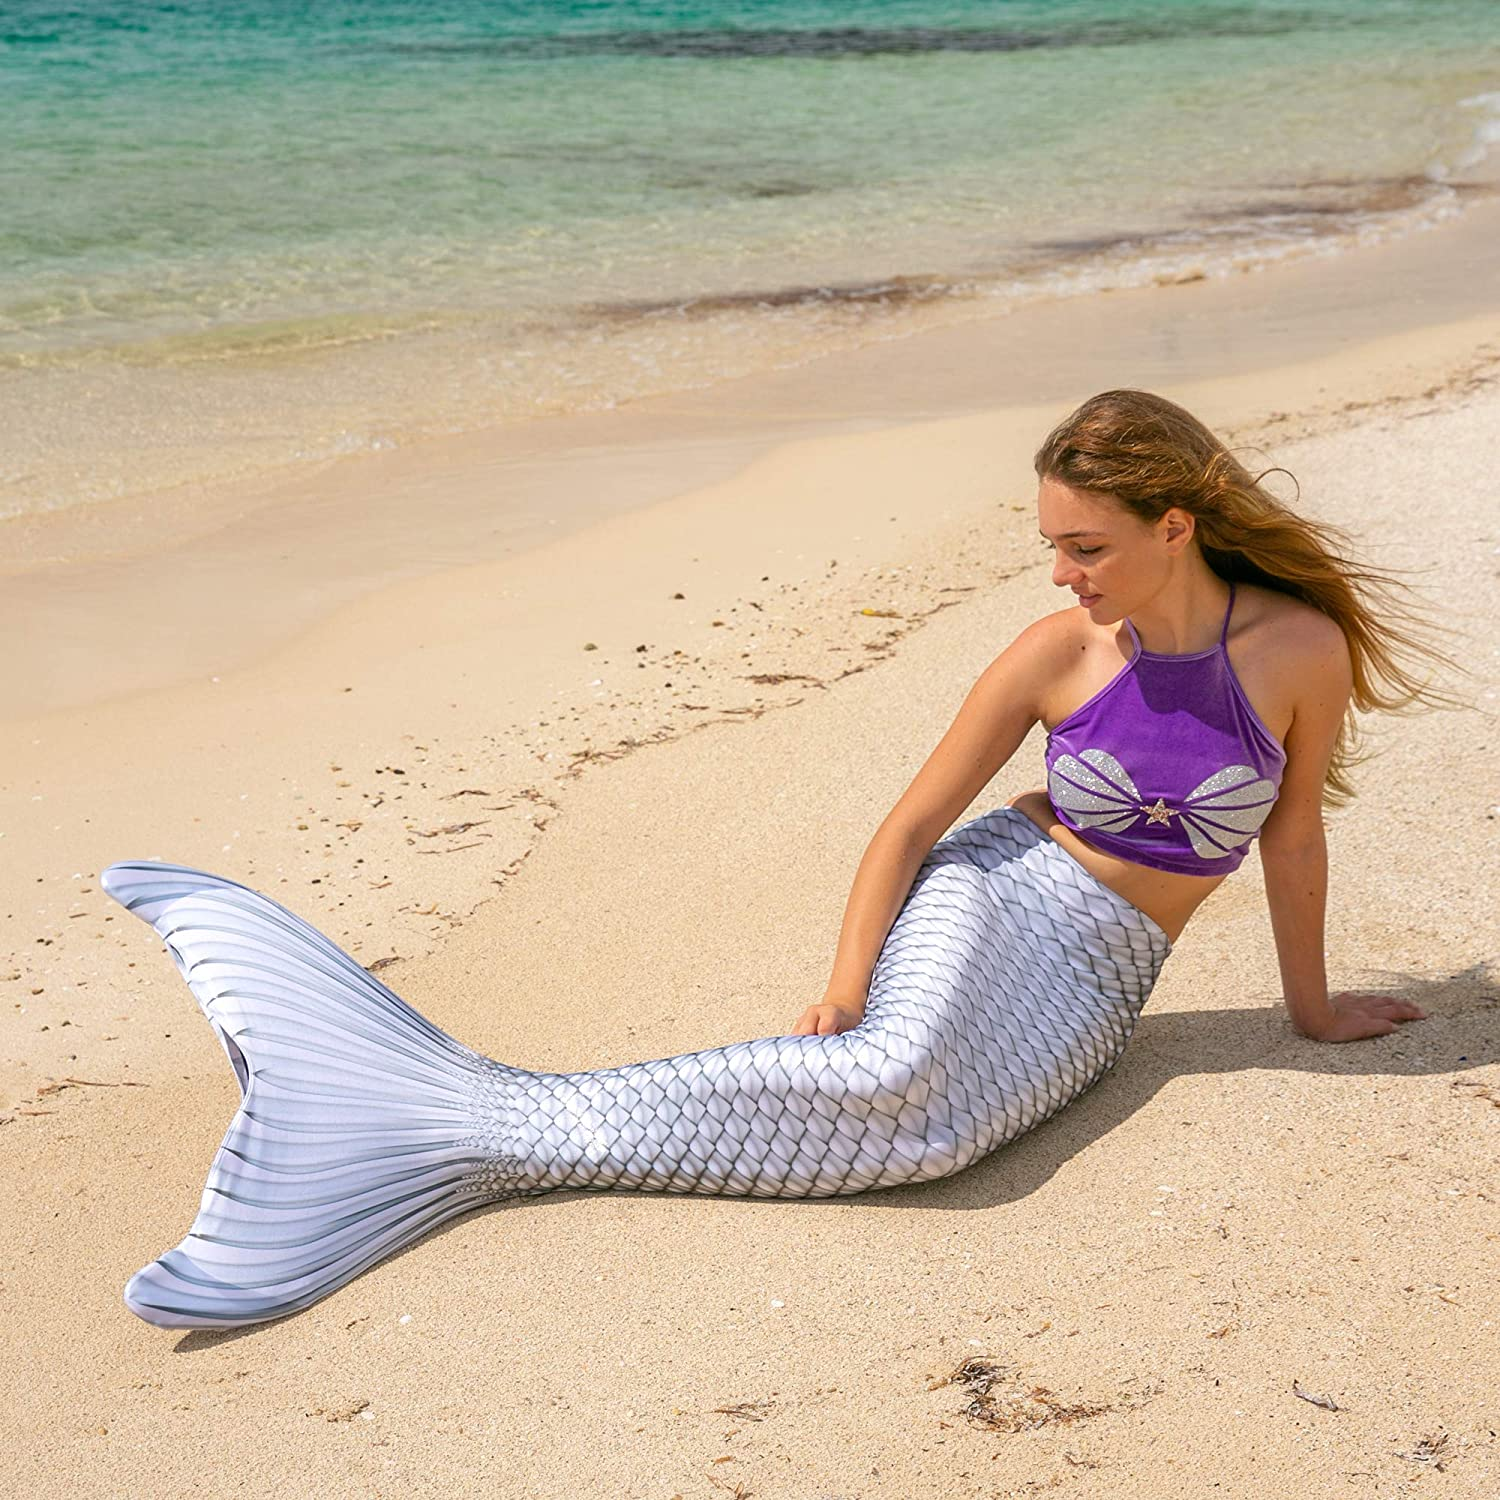 Fin Fun Mermaid Tail, Reinforced Tips, Tropical Sunrise, with Monofin, Adult & Children's Sizes